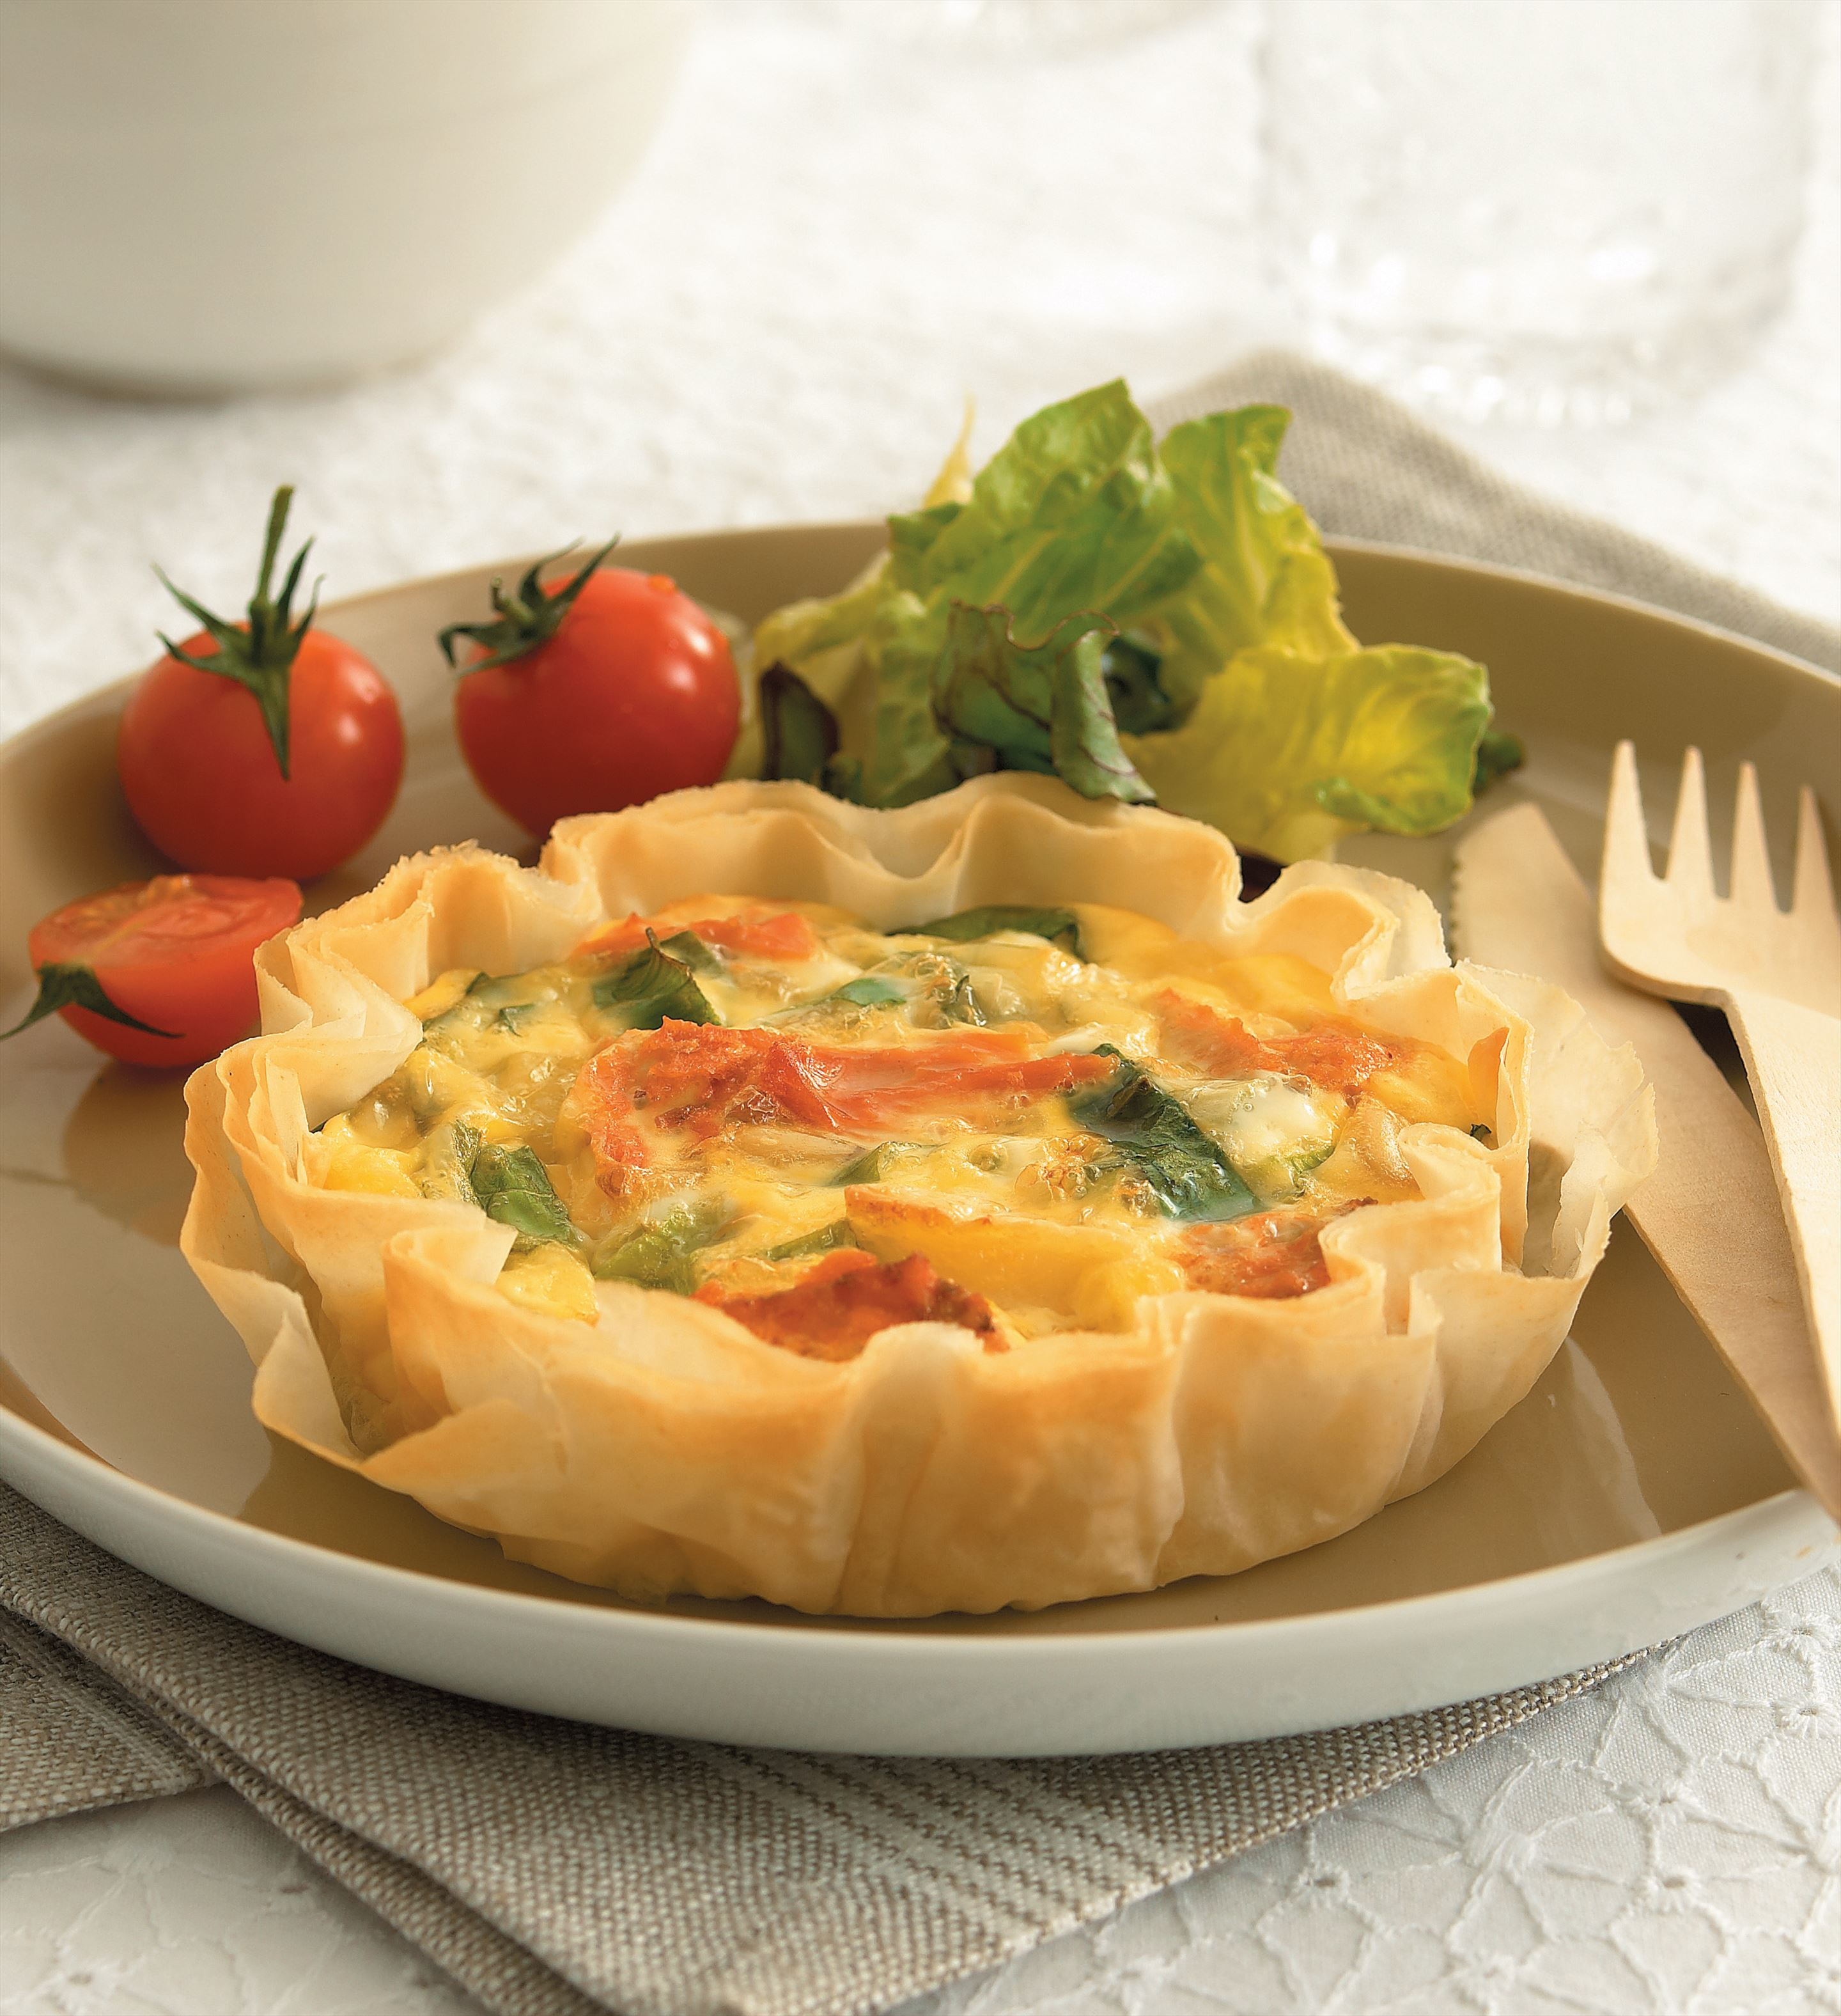 Light salmon quiche